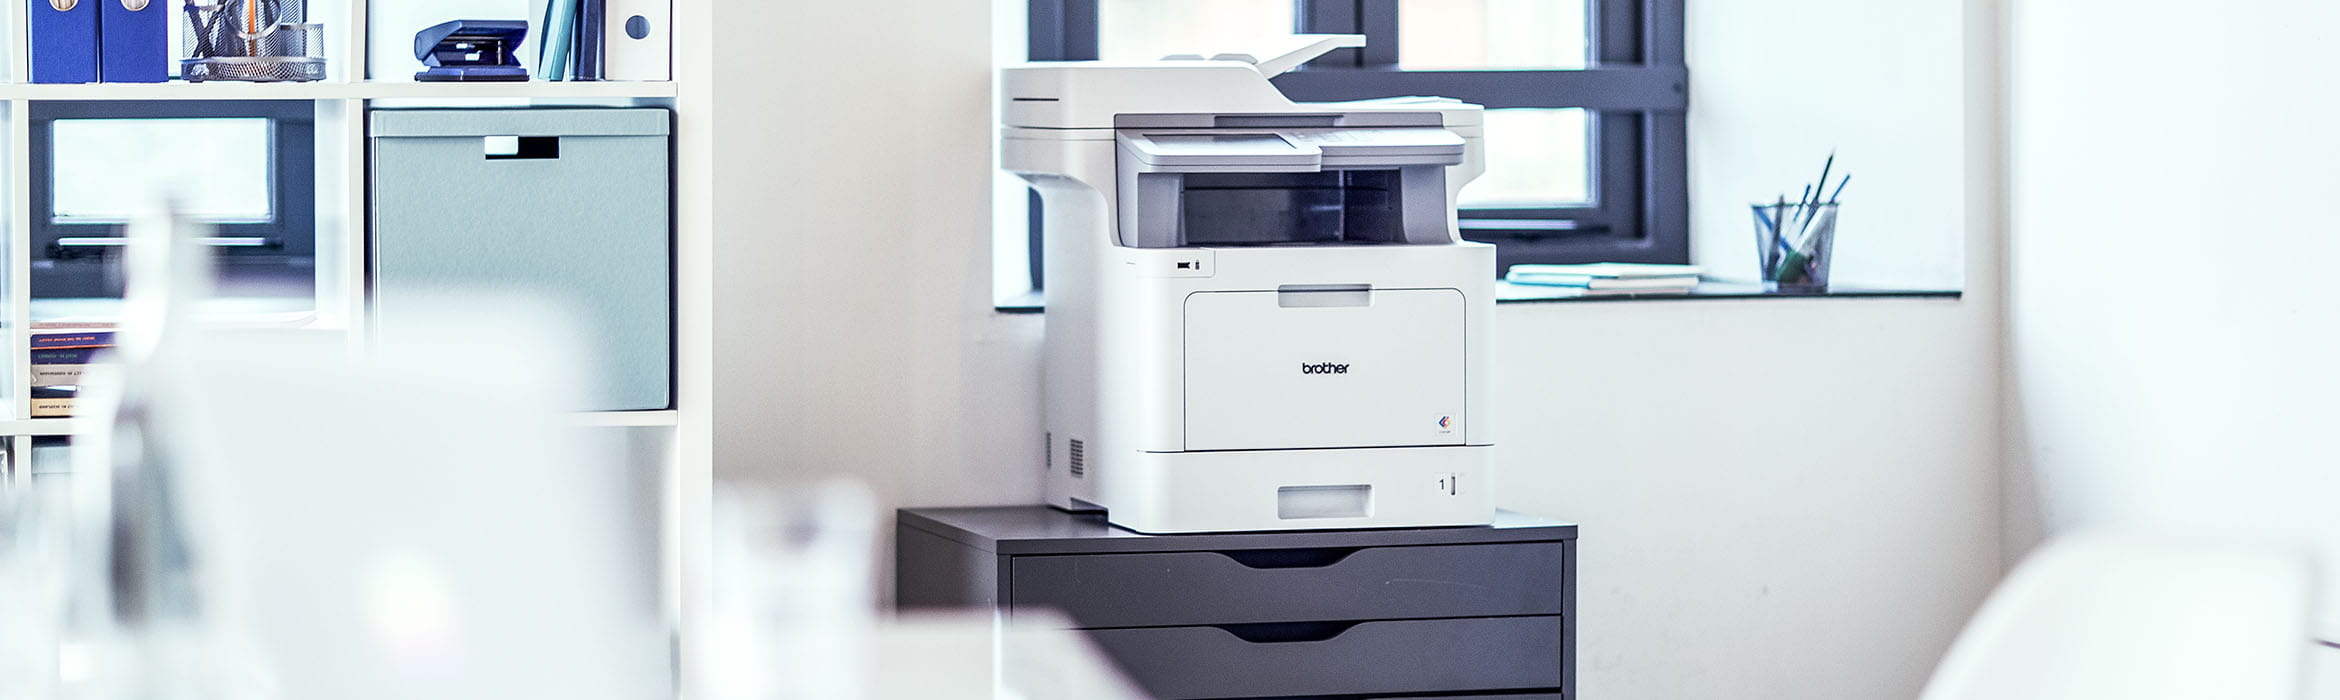 image shows a printer powered by managed print services